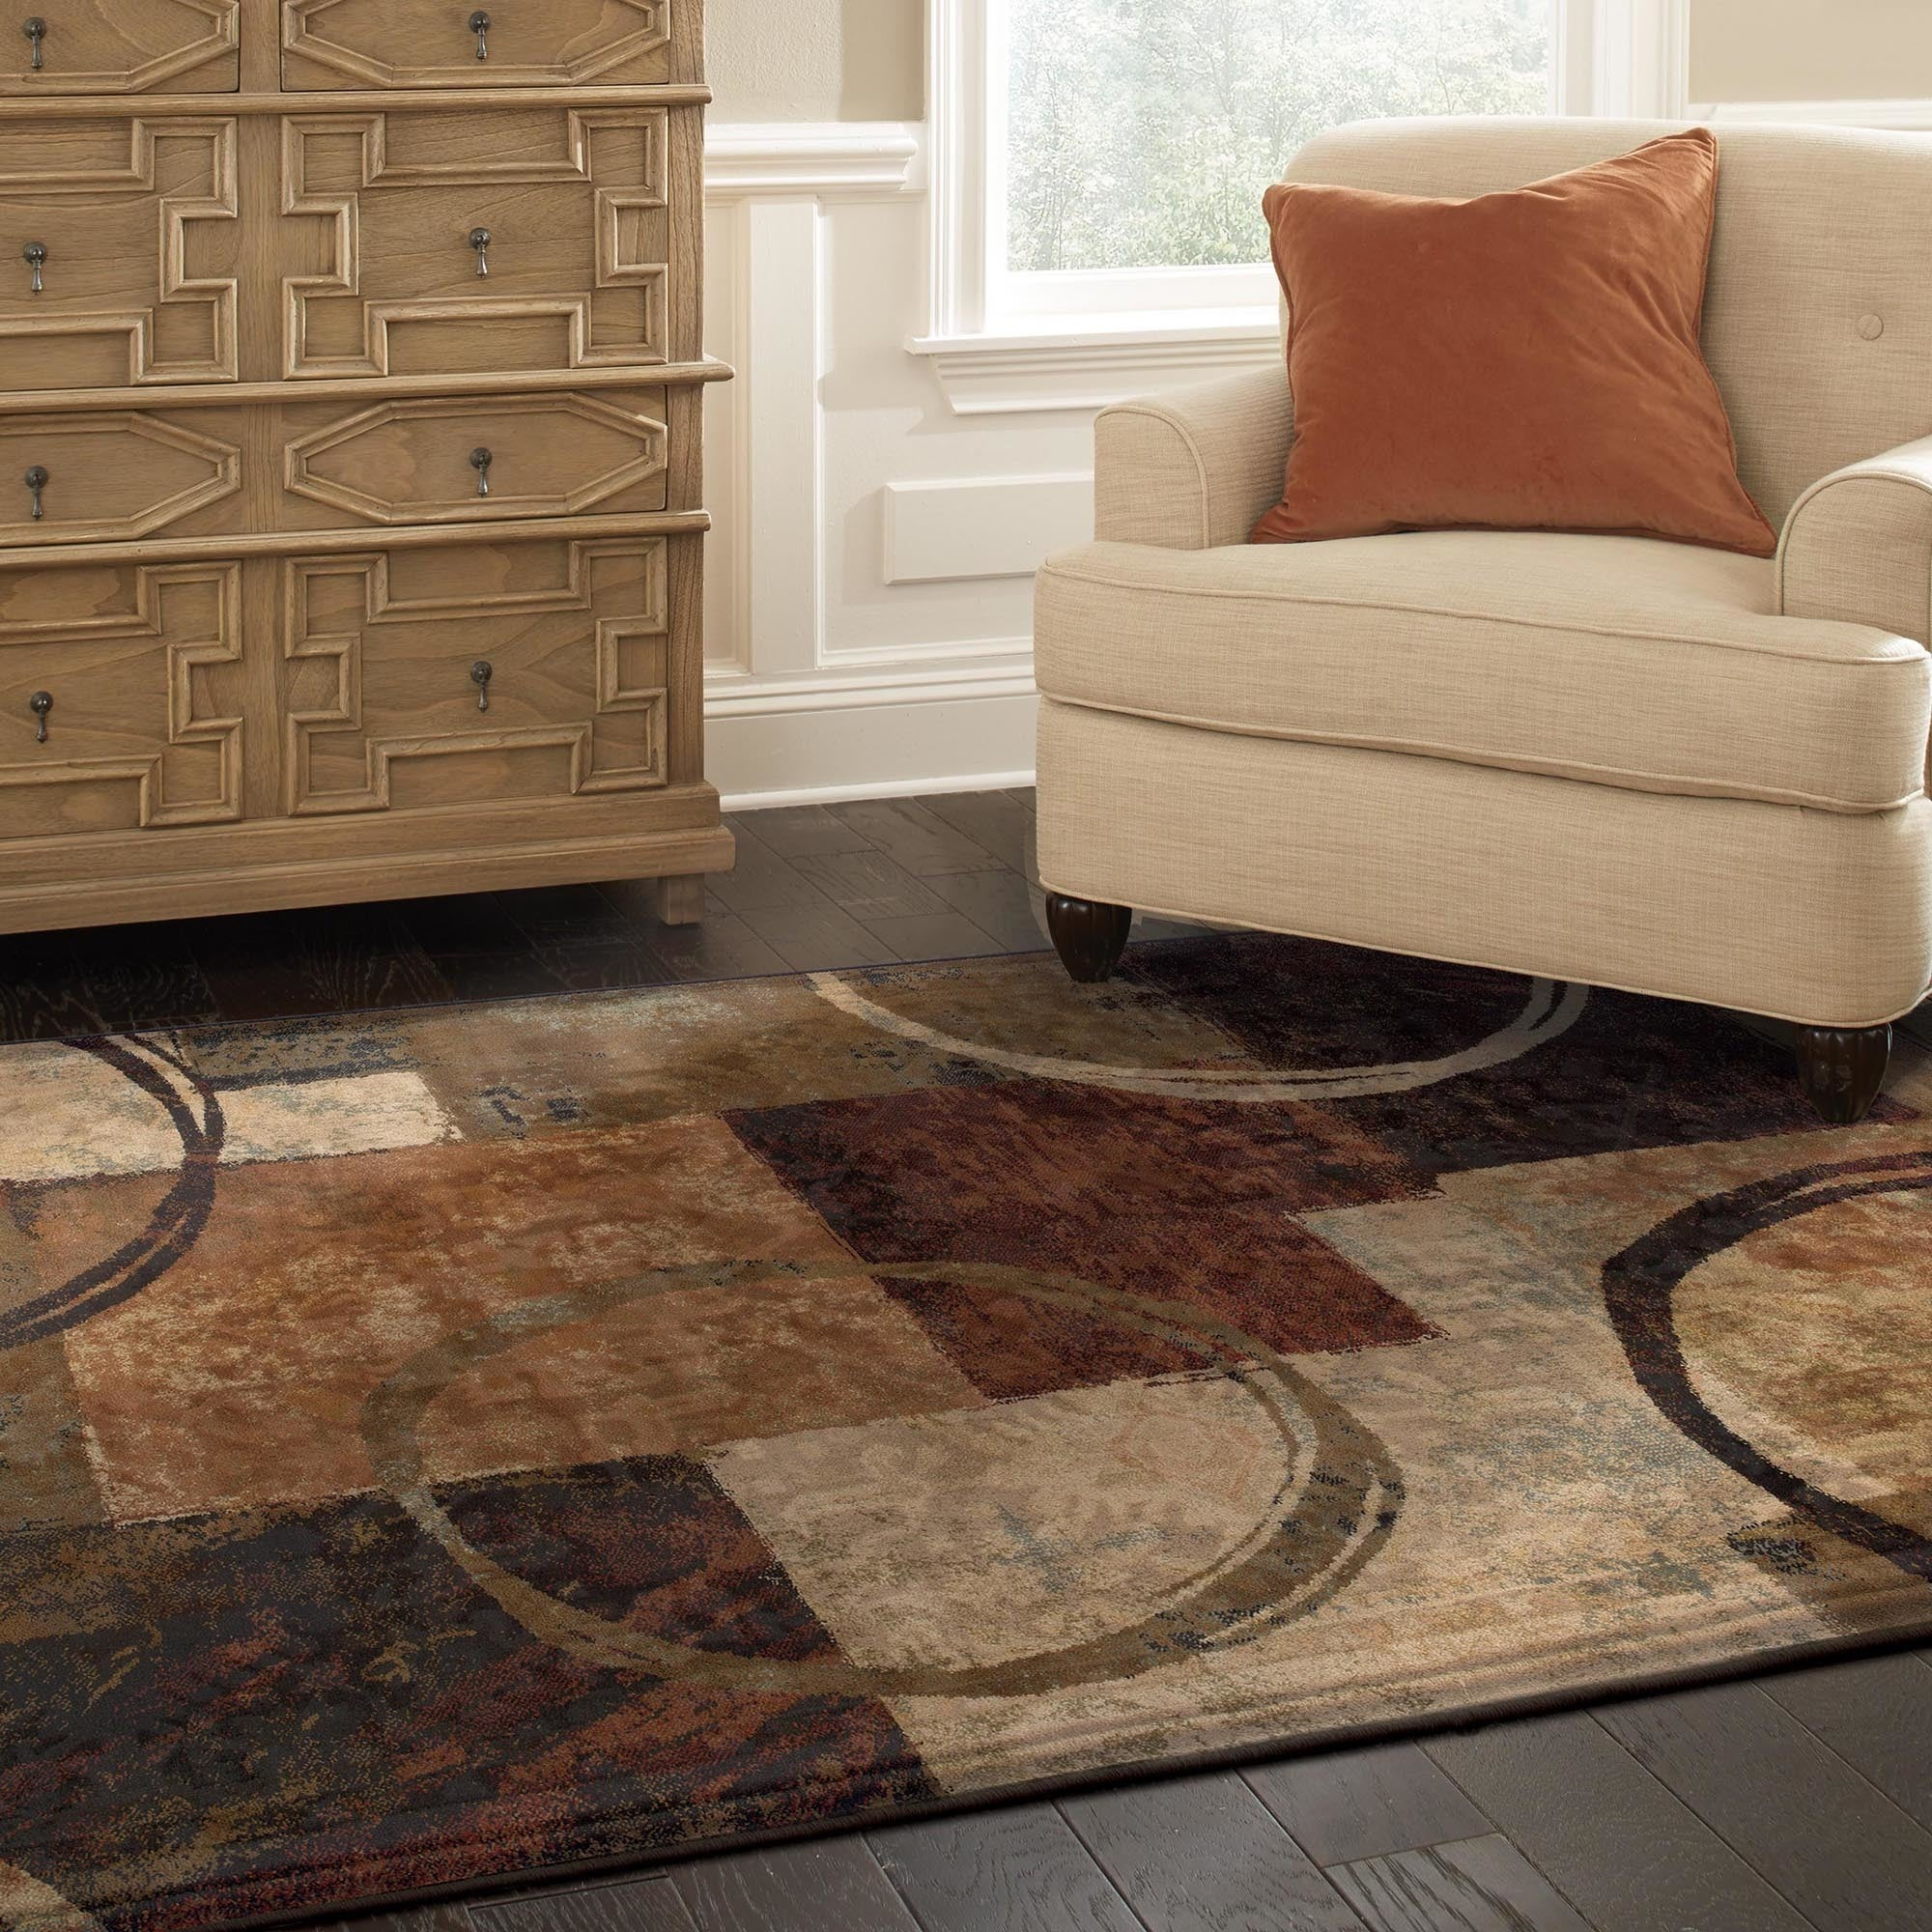 walmart size solid of color large bedroom rugs room area astonishing black for rug full under cheap living